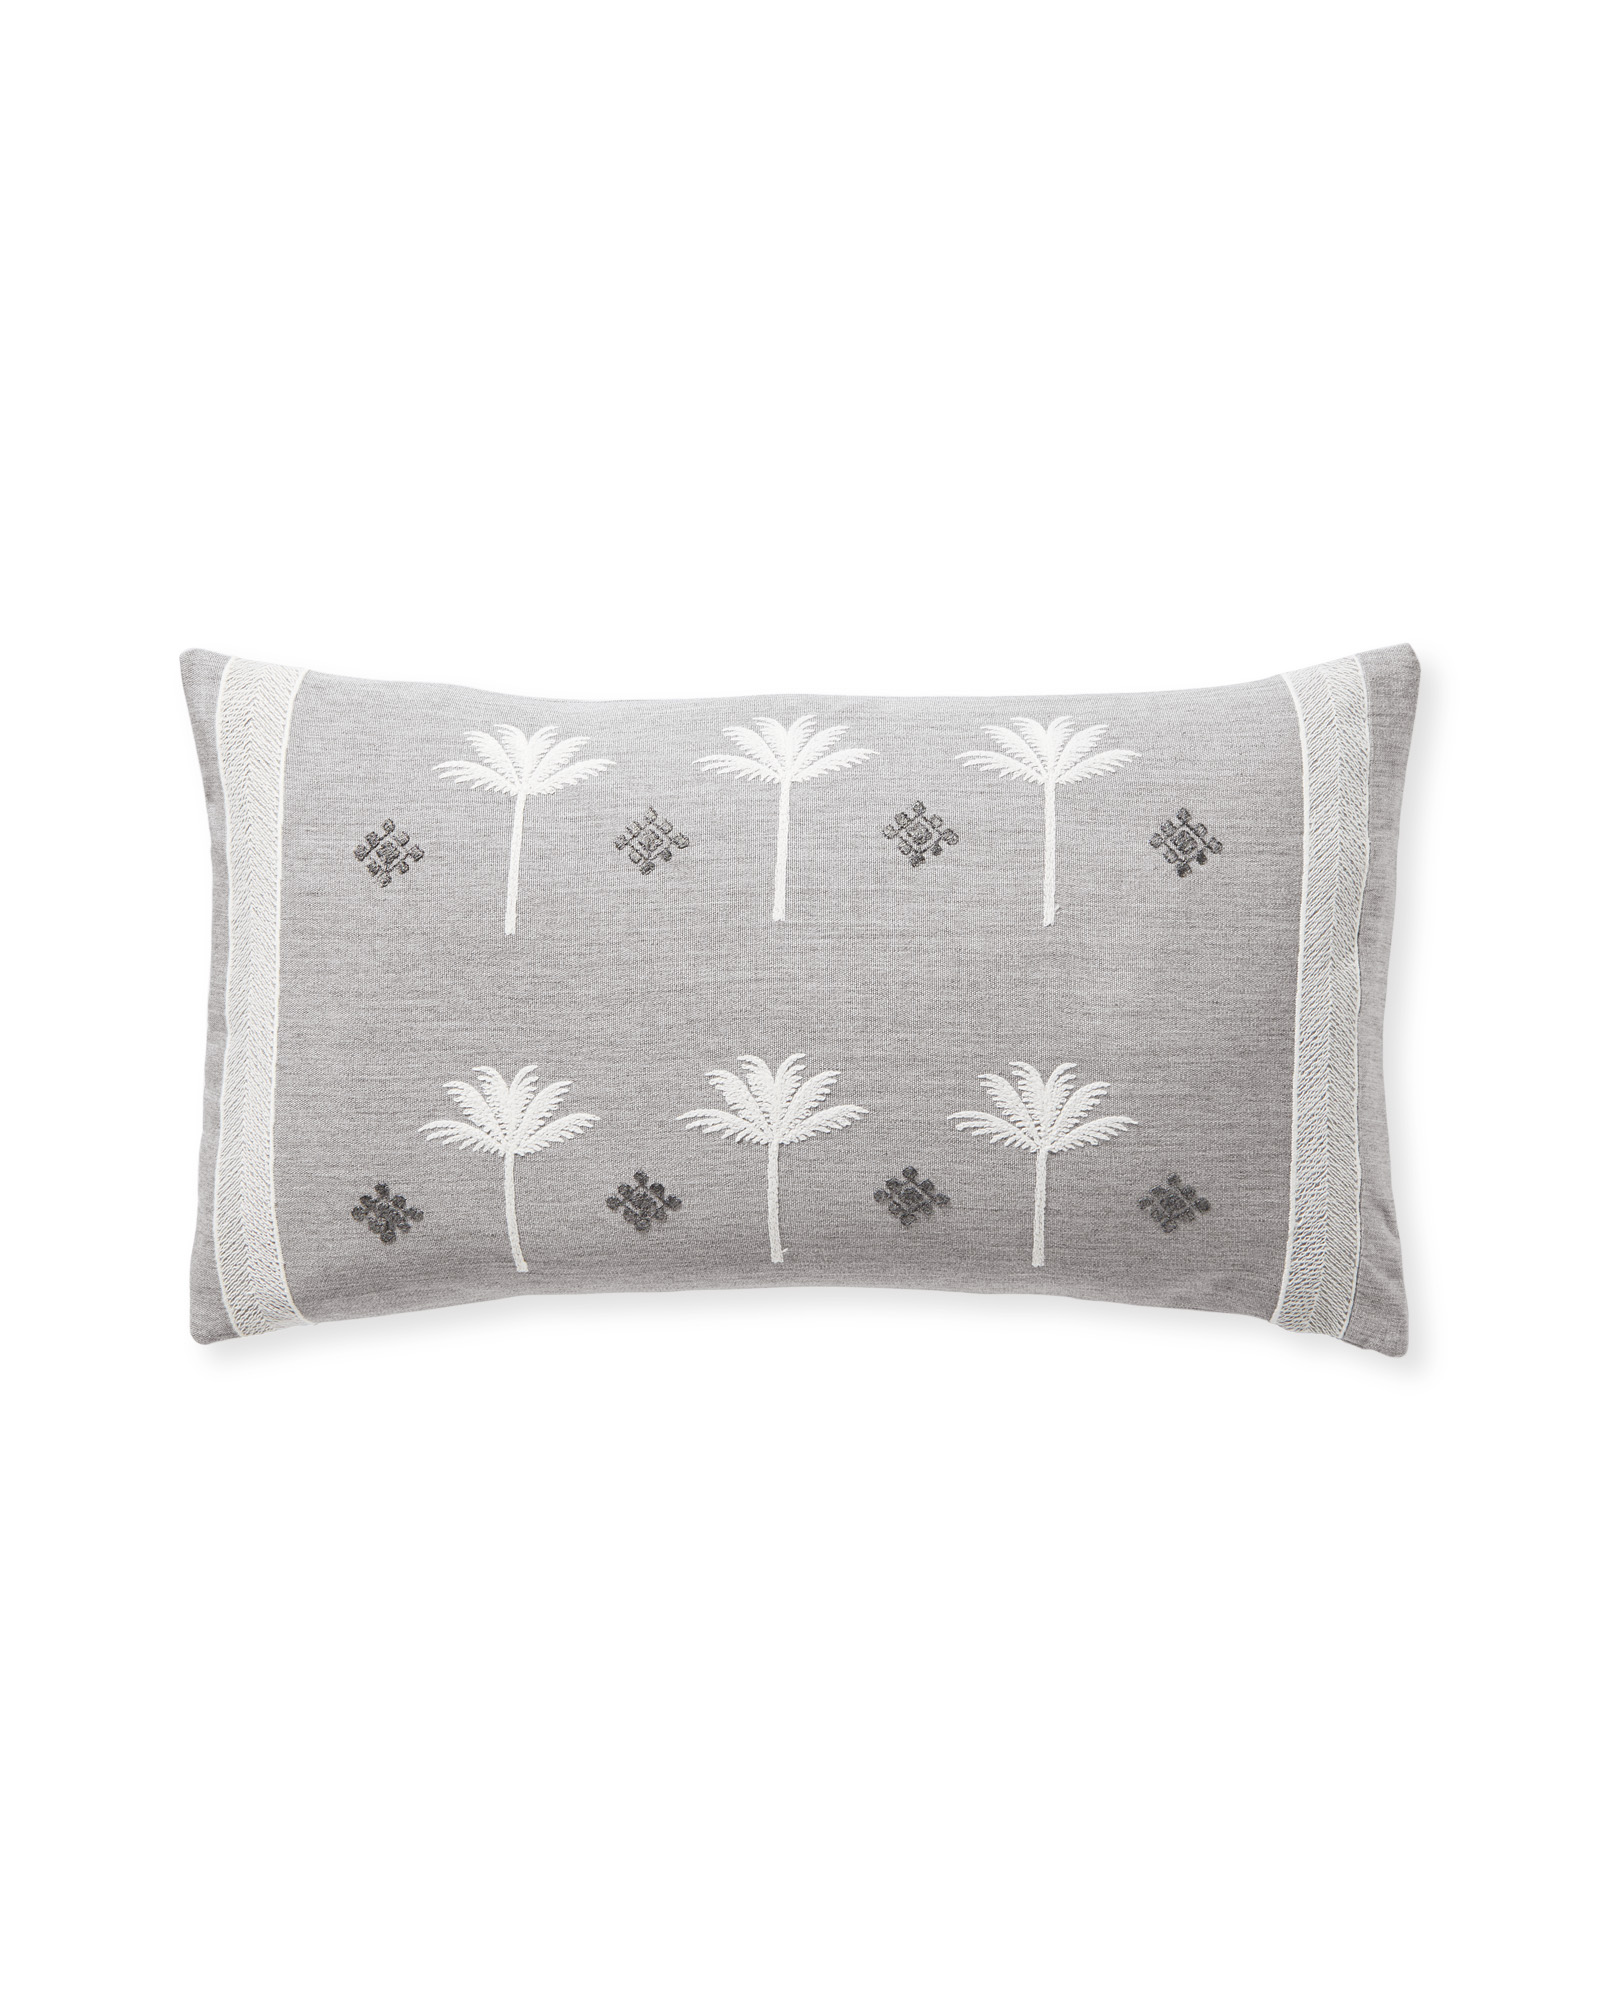 Veracruz Pillow Cover, Fog/Smoke